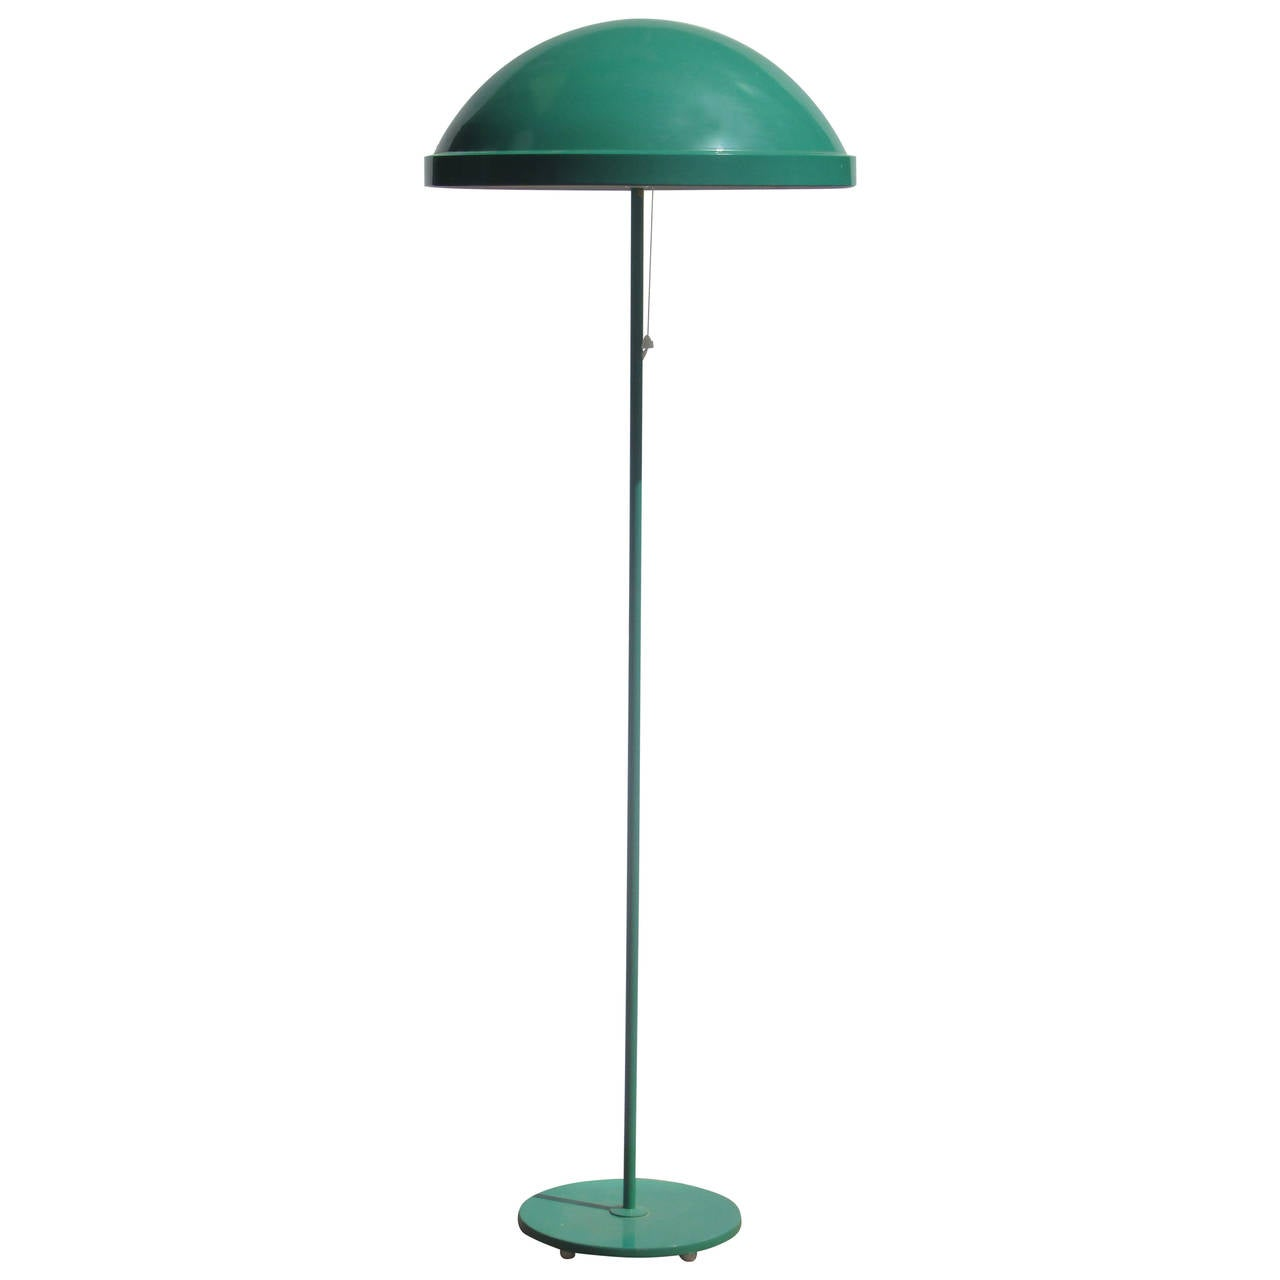 Mid 20th Century Dome-Top Floor Lamp For Sale at 1stdibs